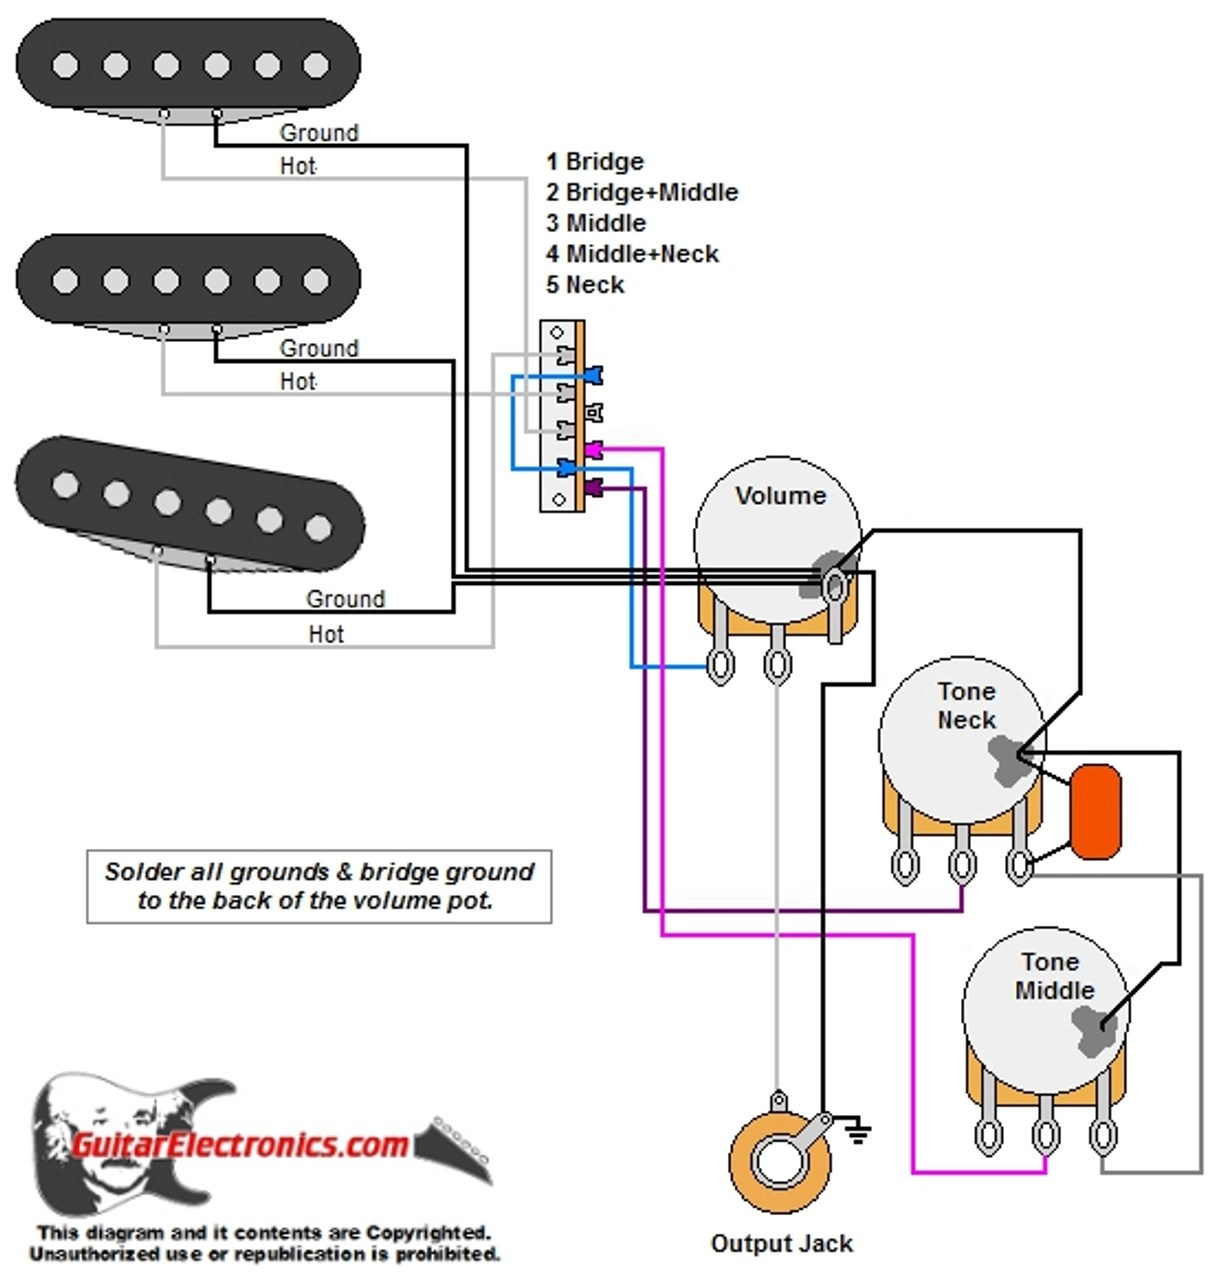 medium resolution of fender strat wire diagram wiring diagram numberstrat style guitar wiring diagram fender stratocaster s1 wiring diagram